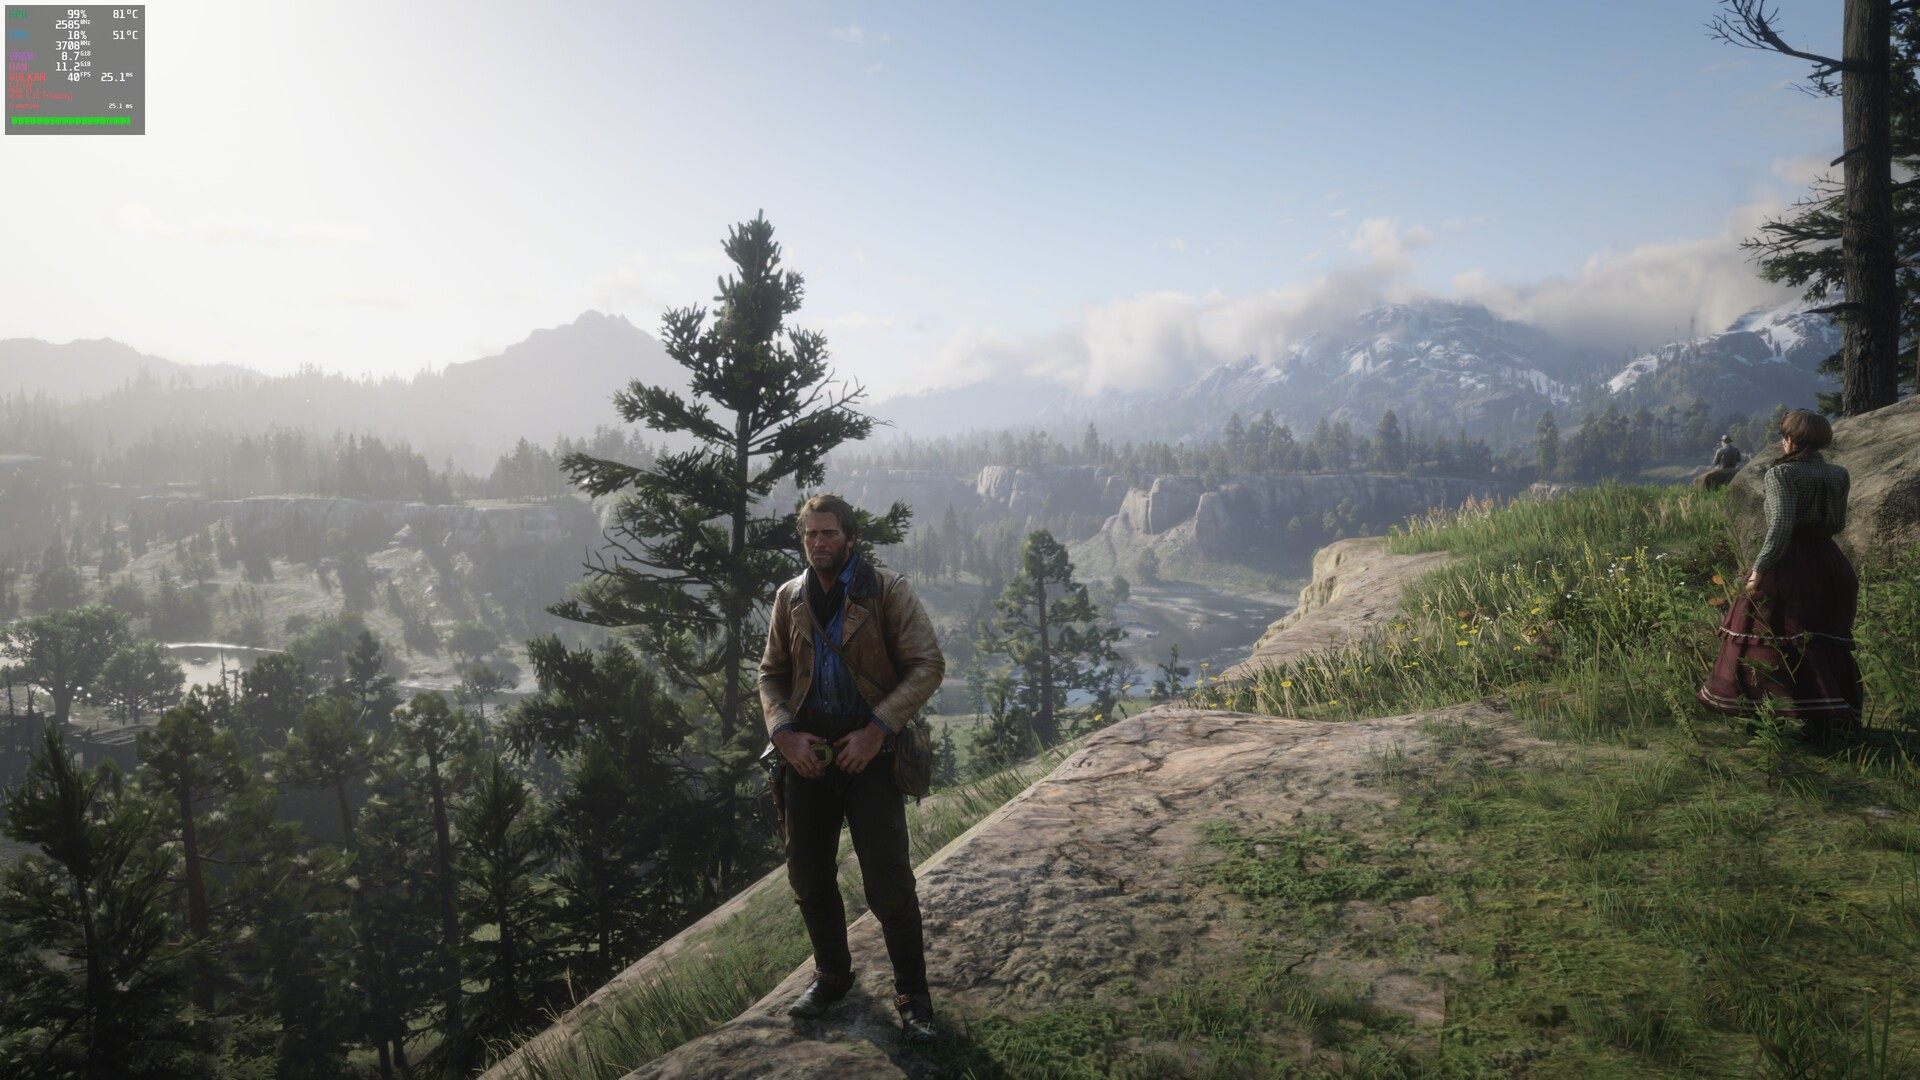 AMD Linux Build: ReD Dead Redemption 2